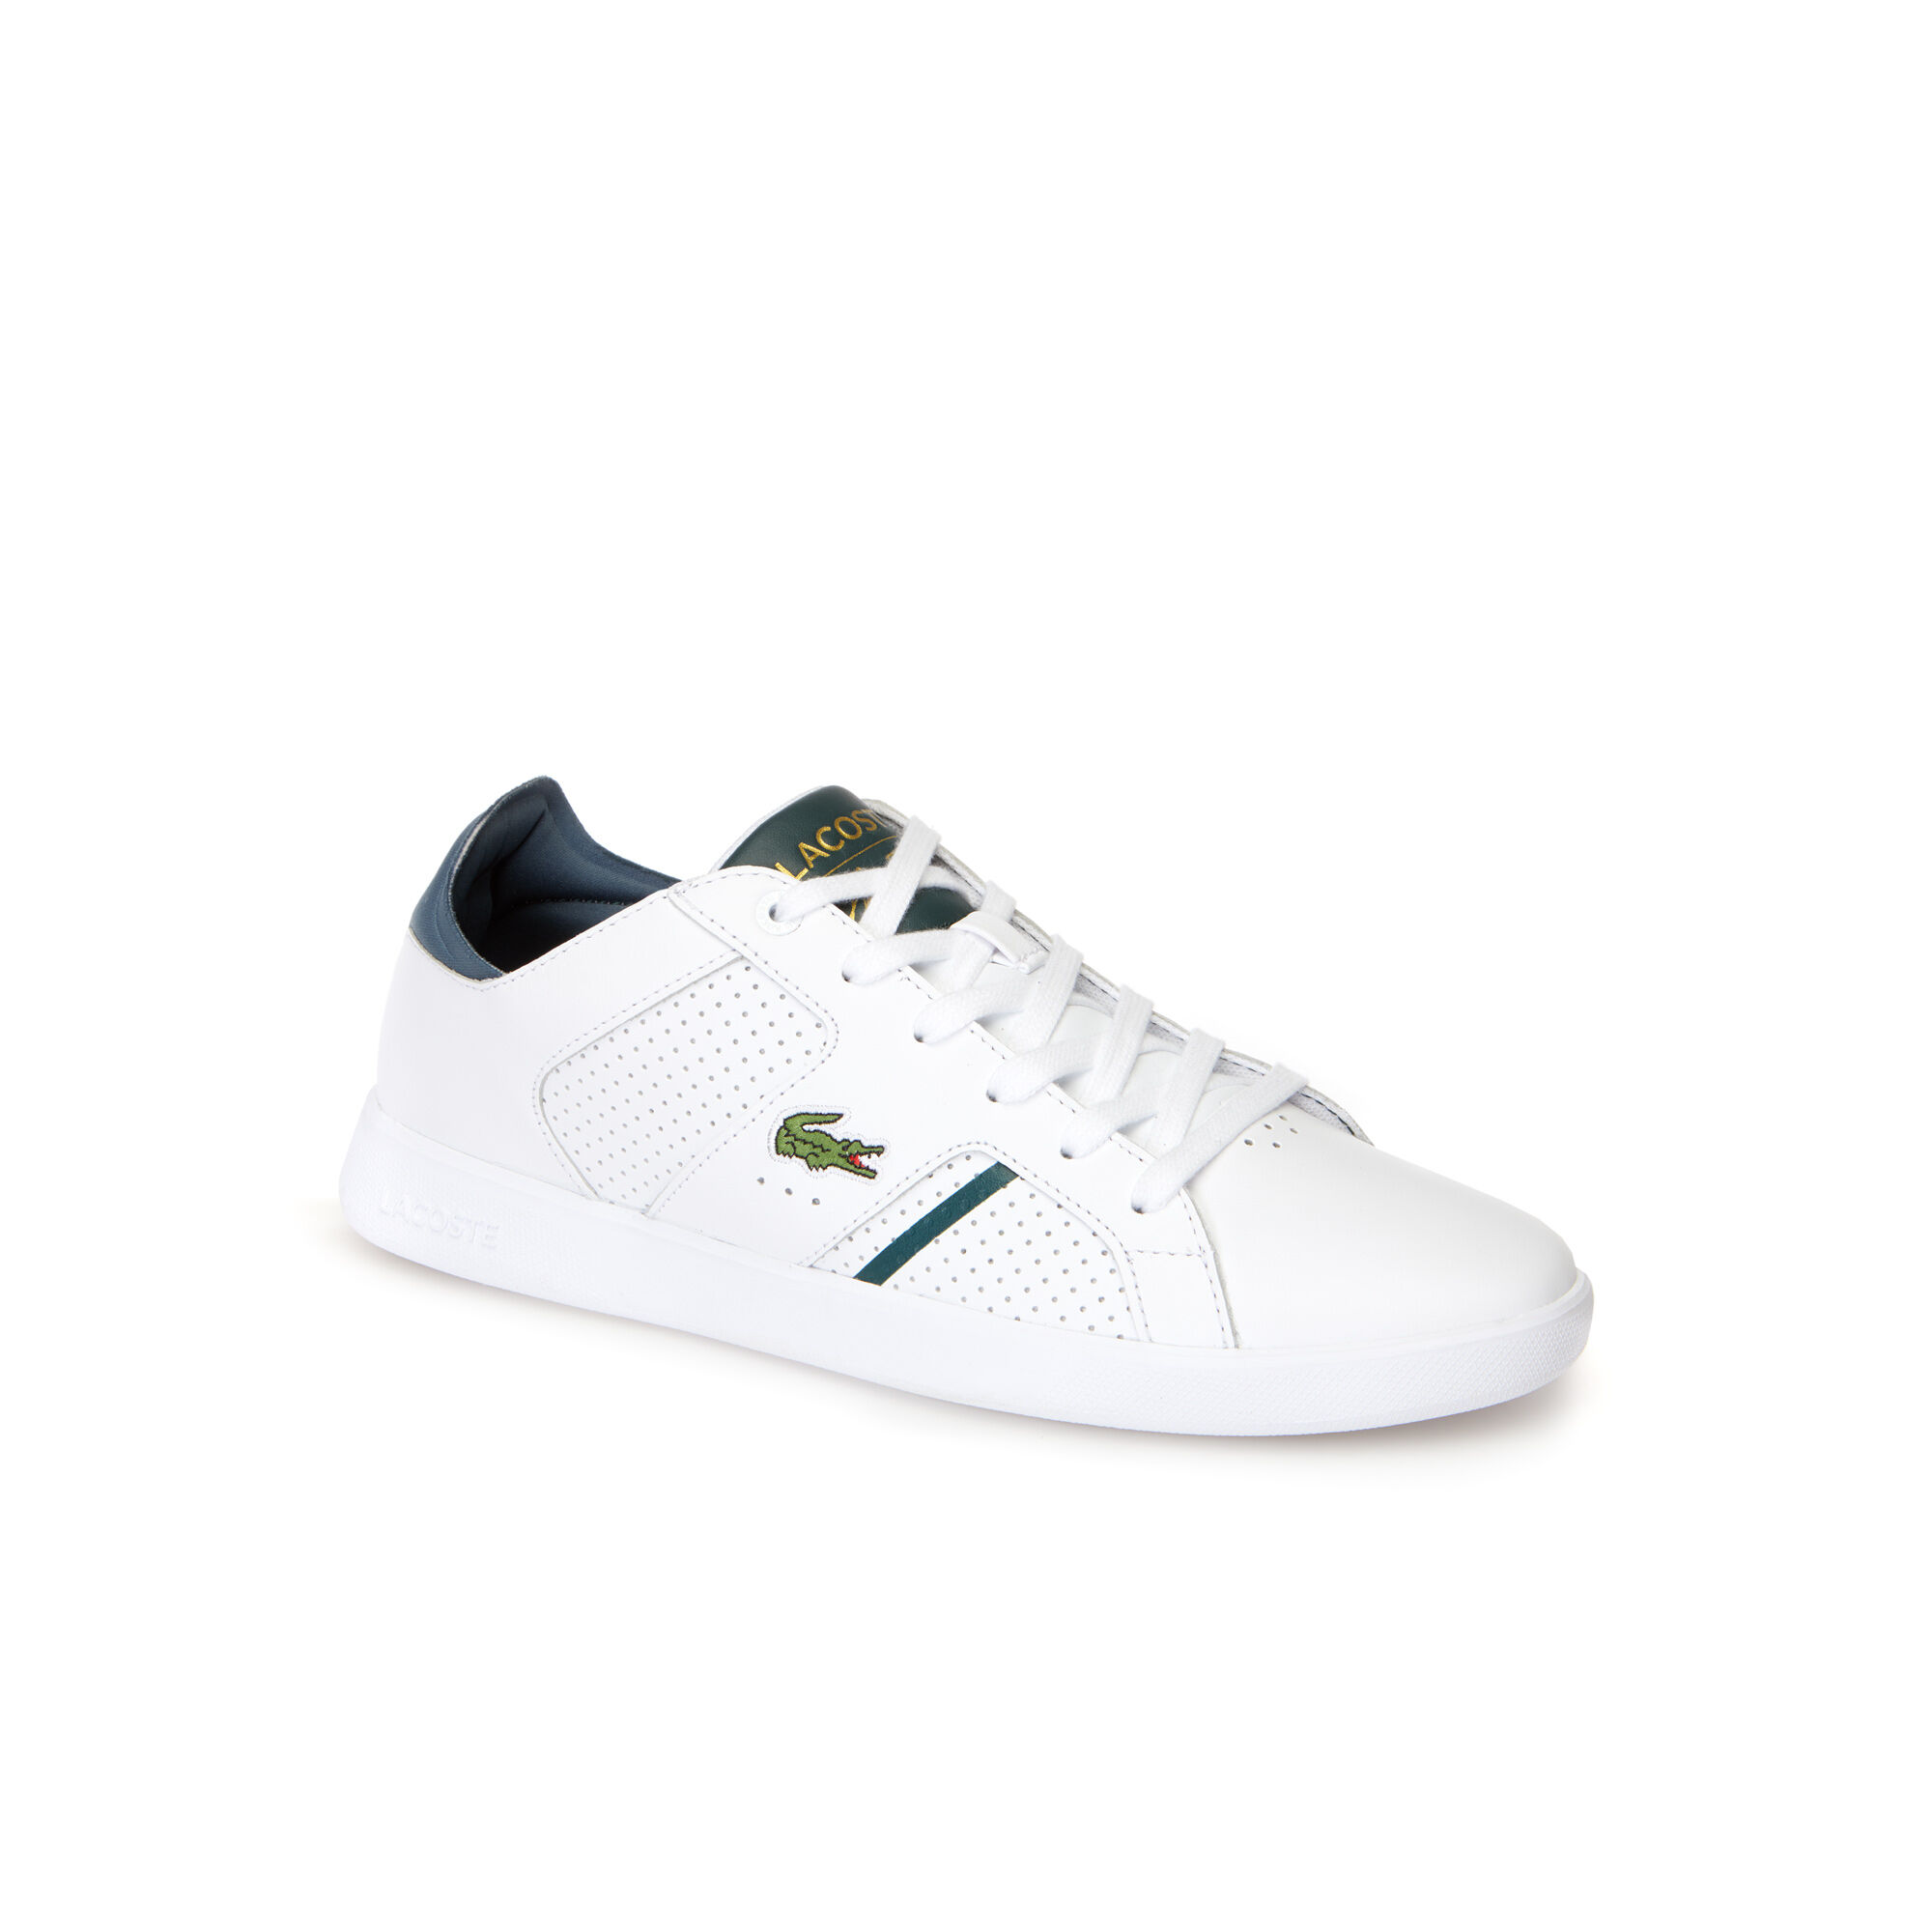 Lacoste ENDLINER Trainers light blue/light pink 2vo7buic